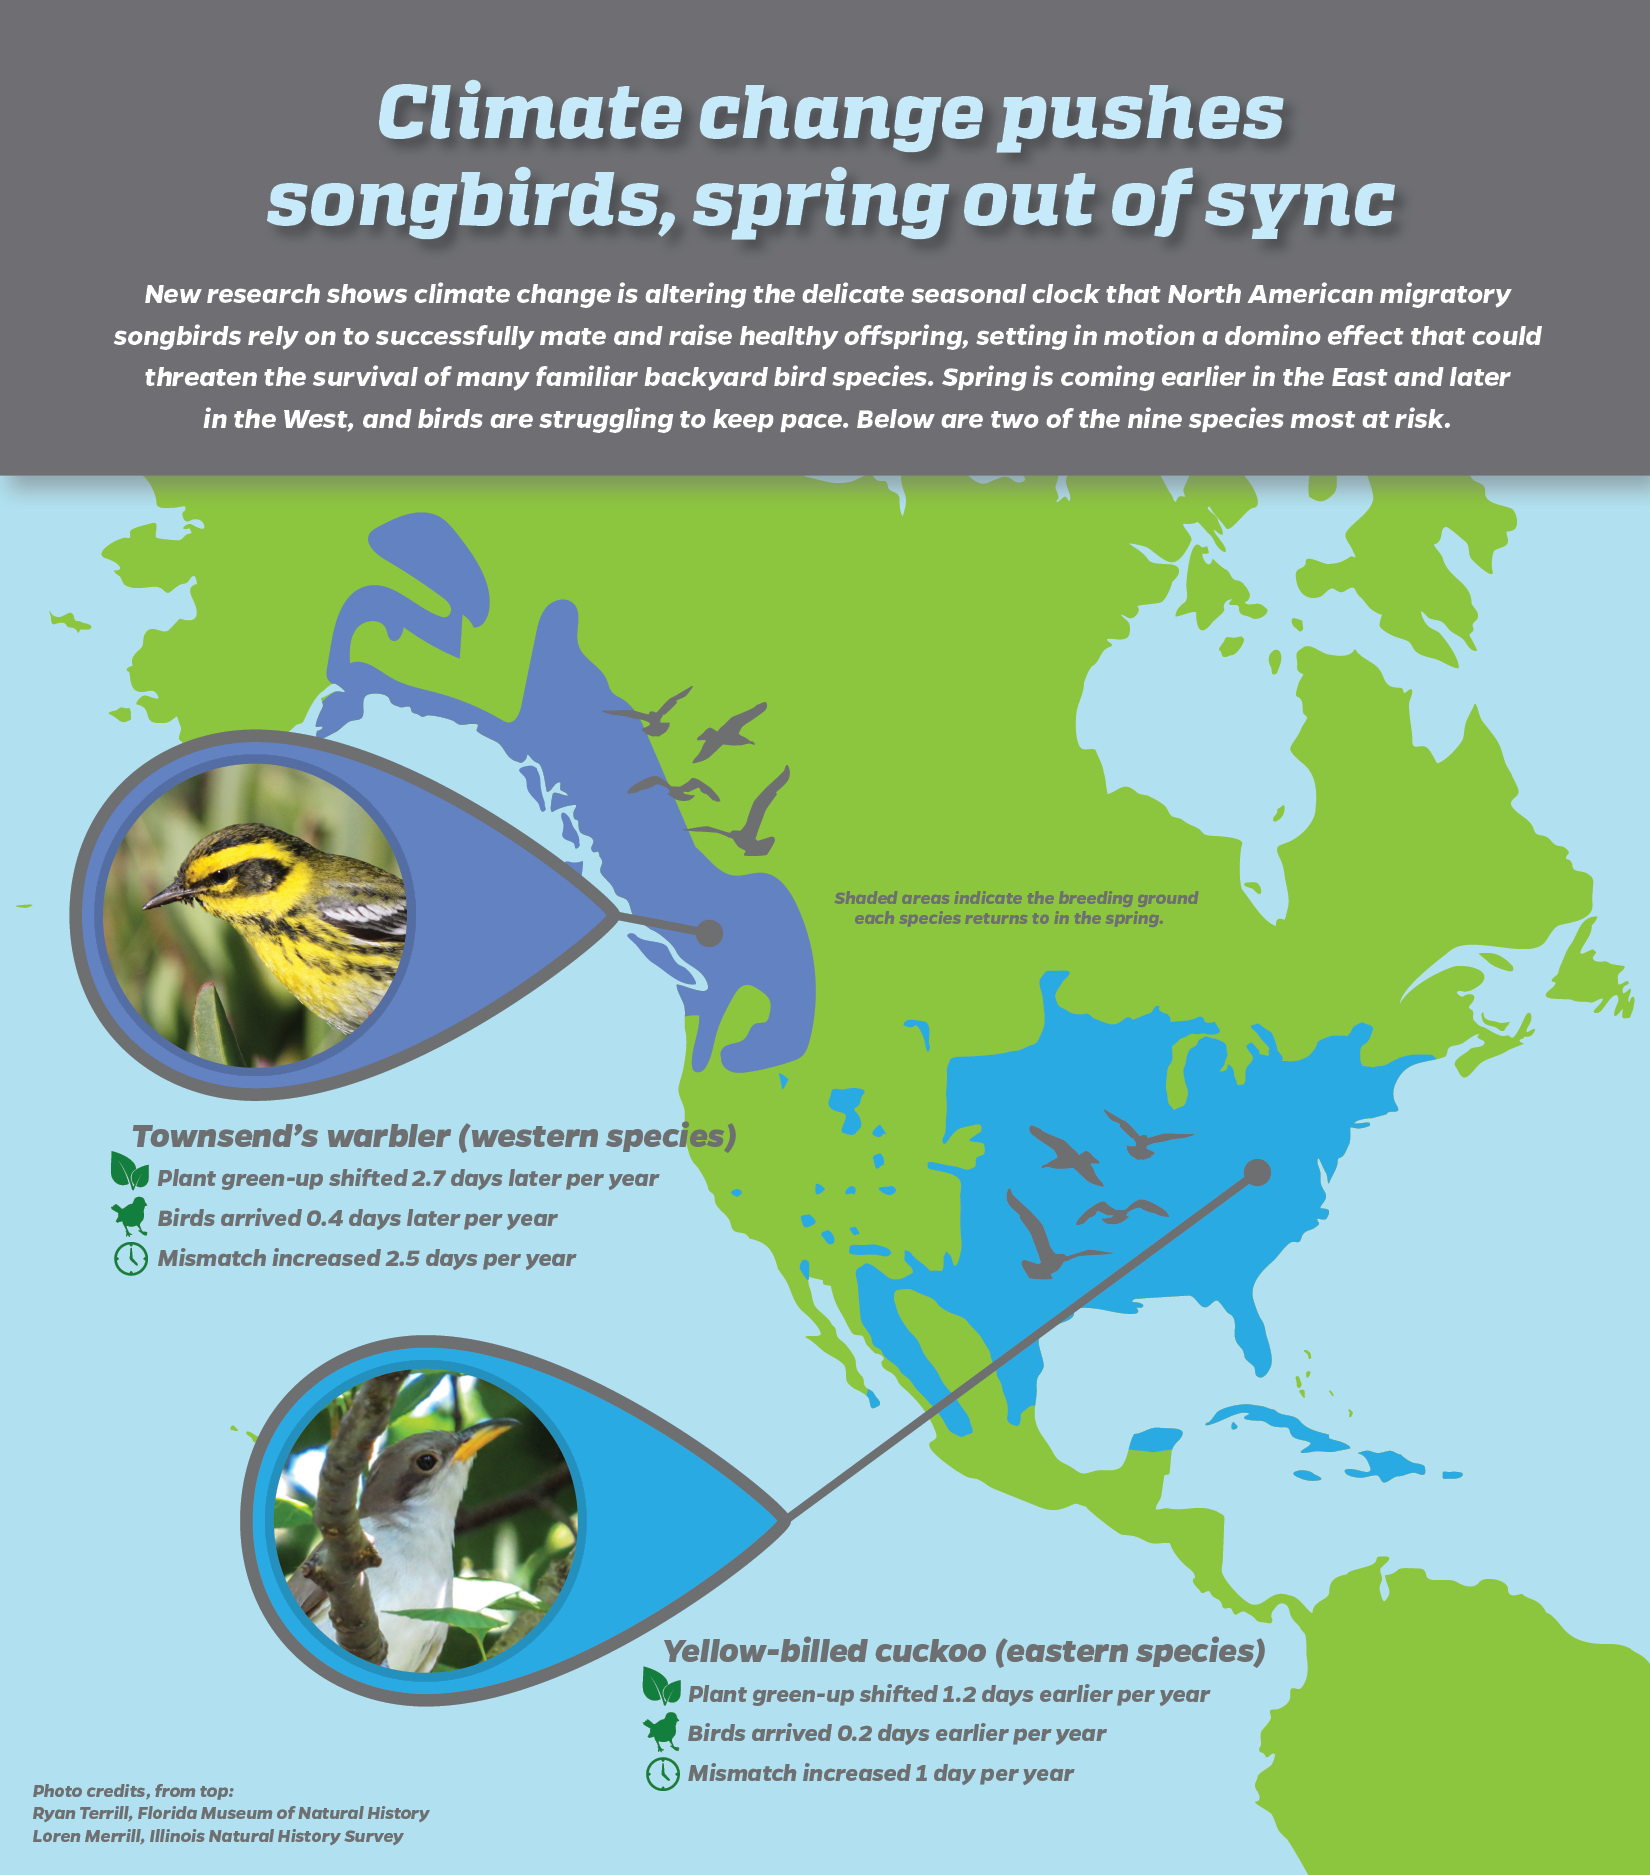 Climate Change Florida Map.05 Migratory Birds Bumped Off Schedule As Climate Change Shifts